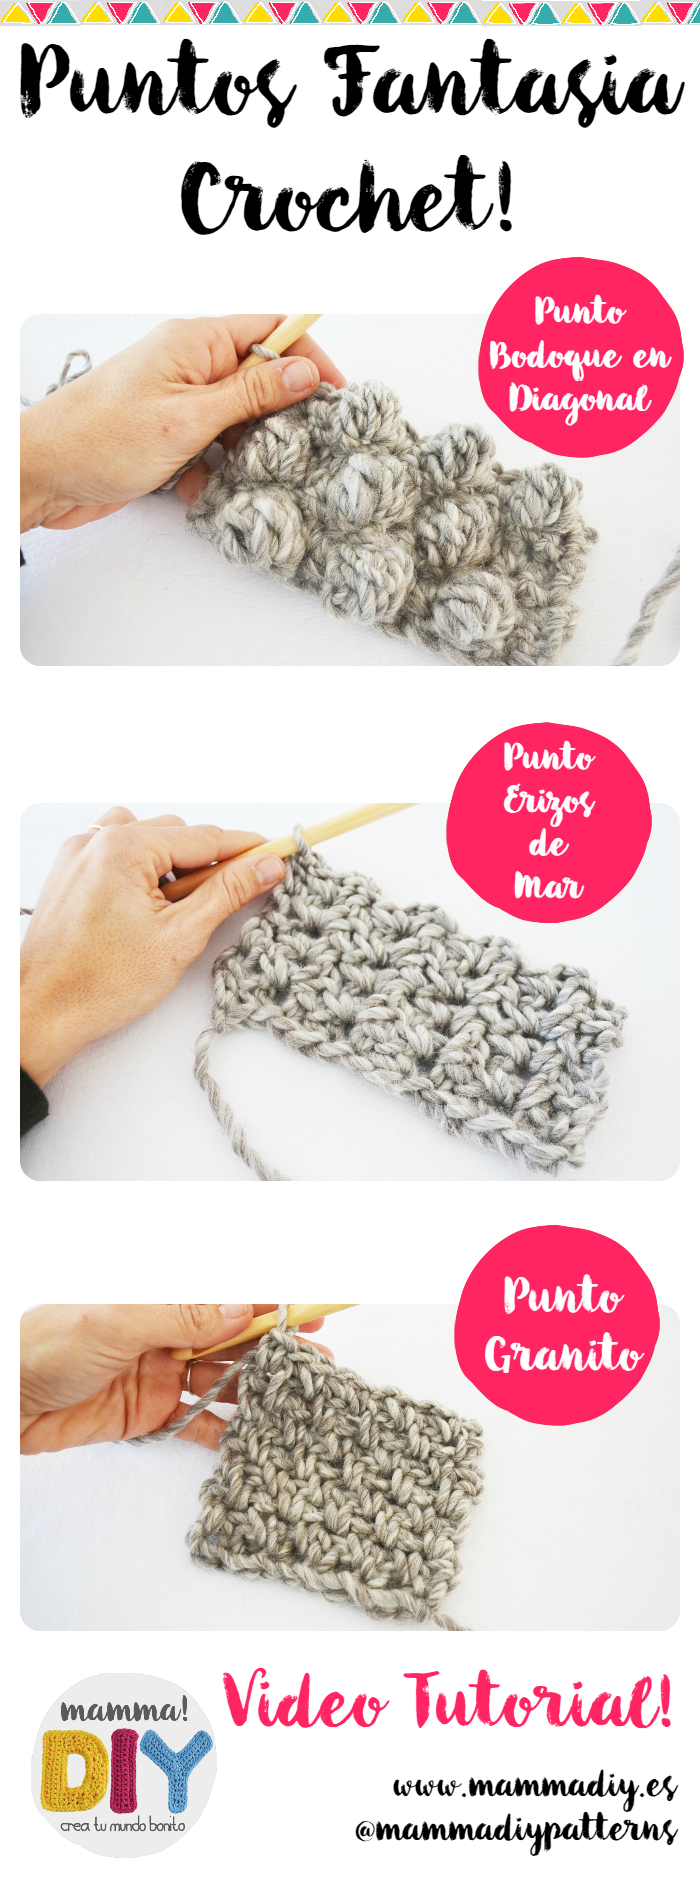 Puntos Fantasia Crochet y Ganchillo archivos - Mamma! Do It Yourself